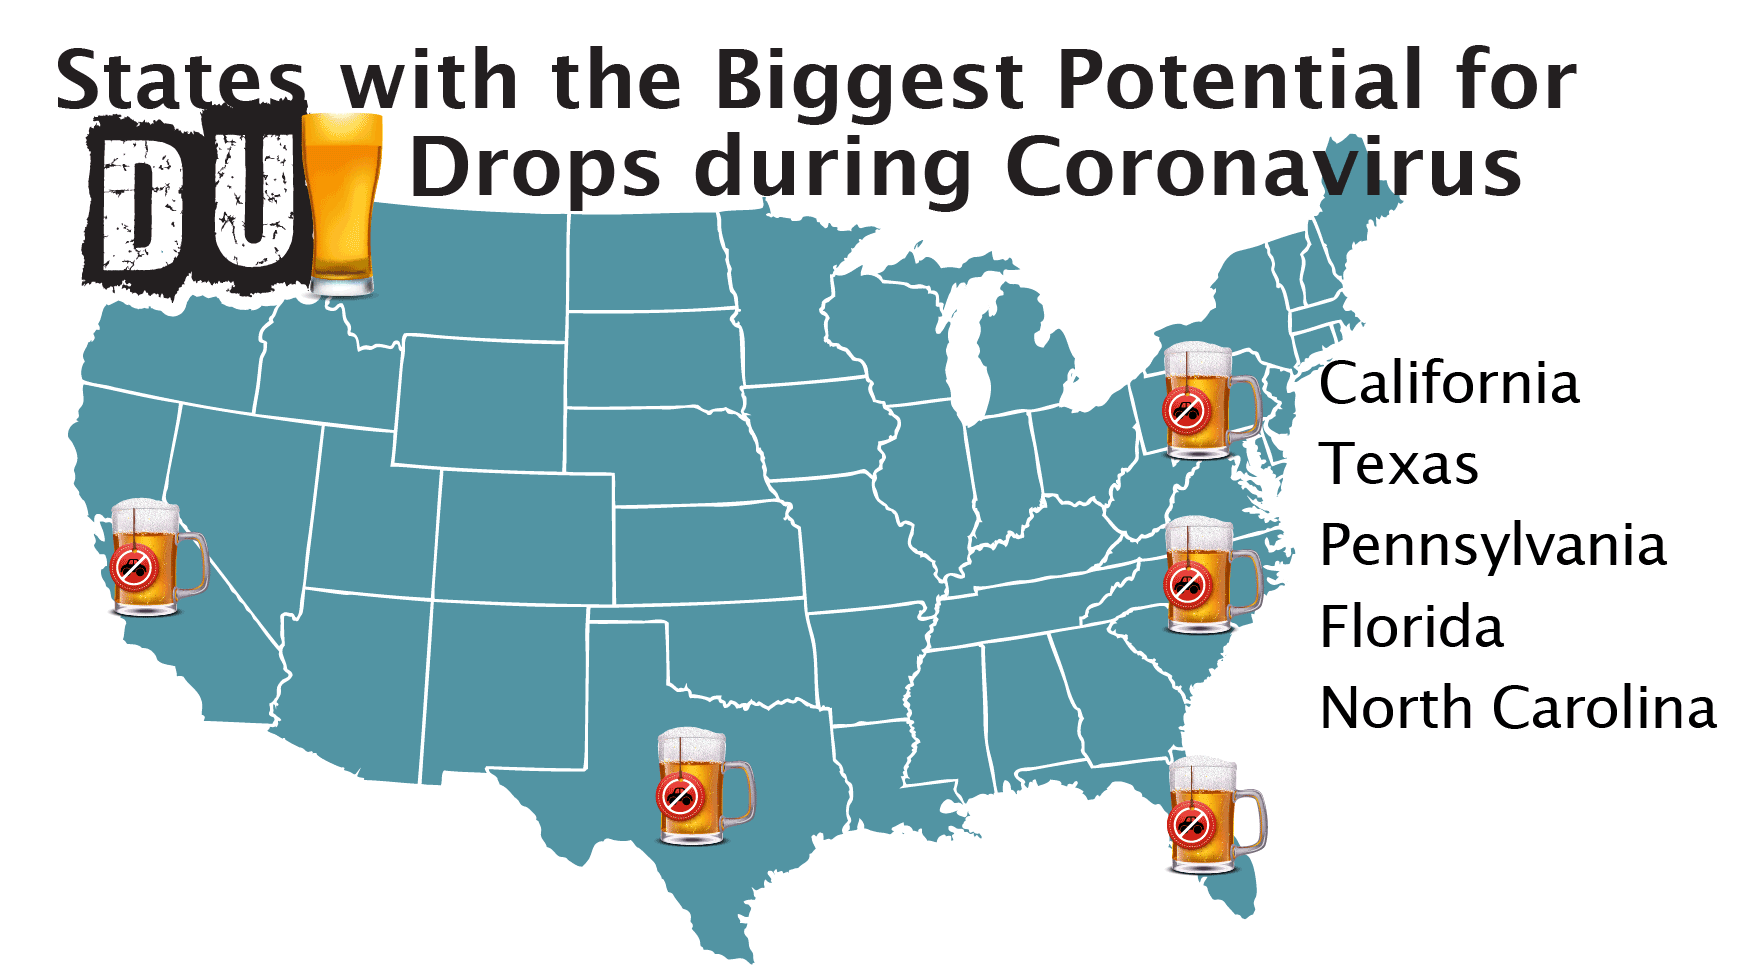 States with Biggest DUI Drop Potential during Coronavirus